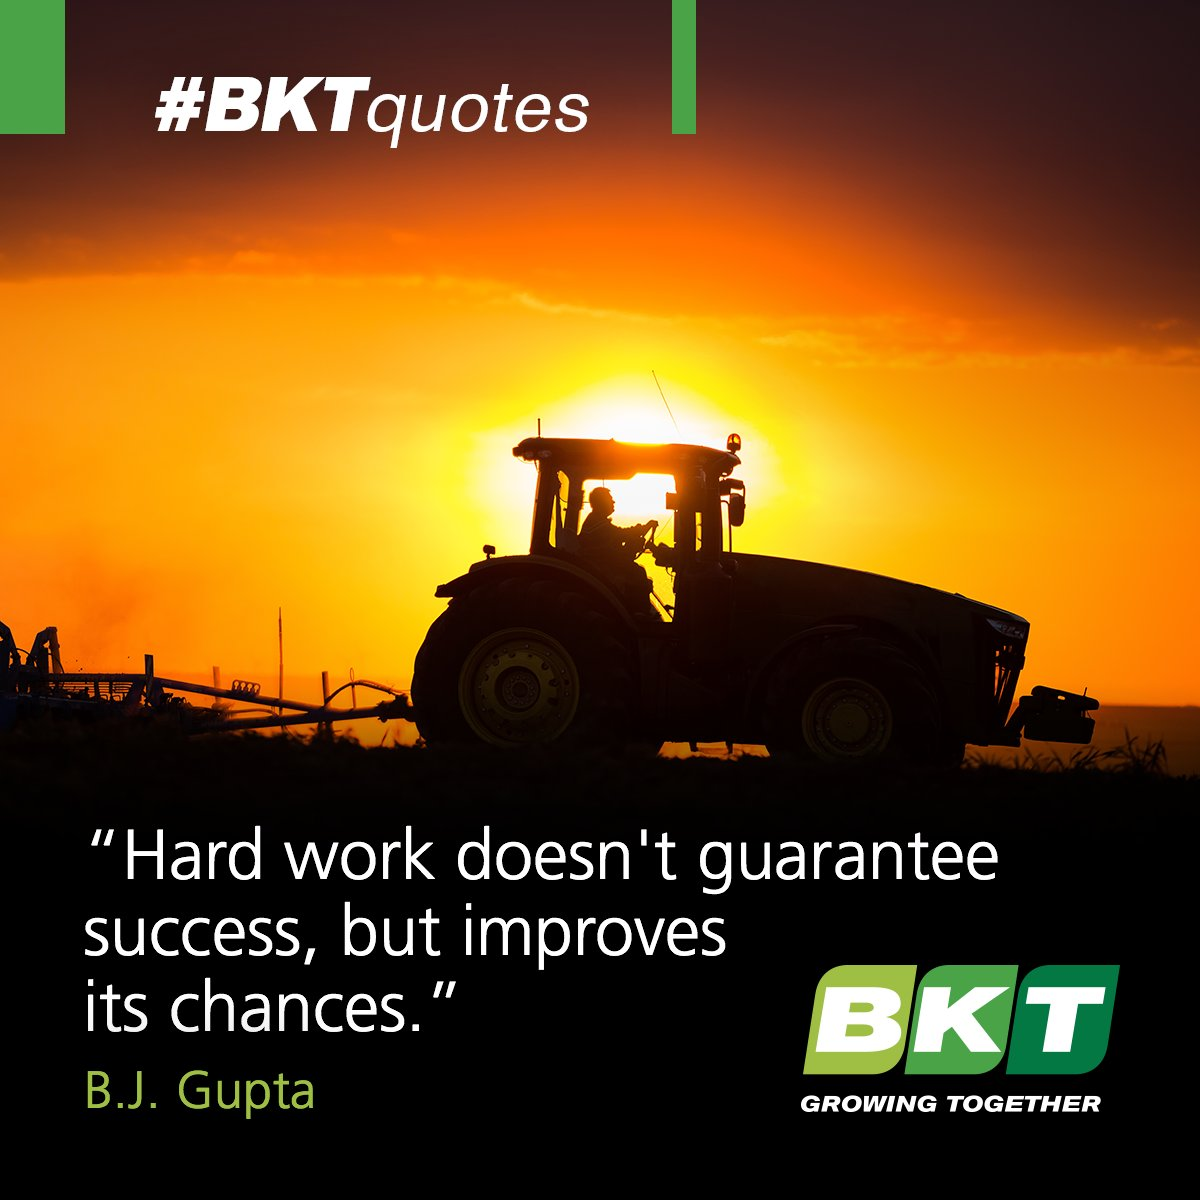 Why not take a chance and reach your goals? #BKTquotes #success #quote #quoteoftheday https://t.co/nzOT8FyMXD